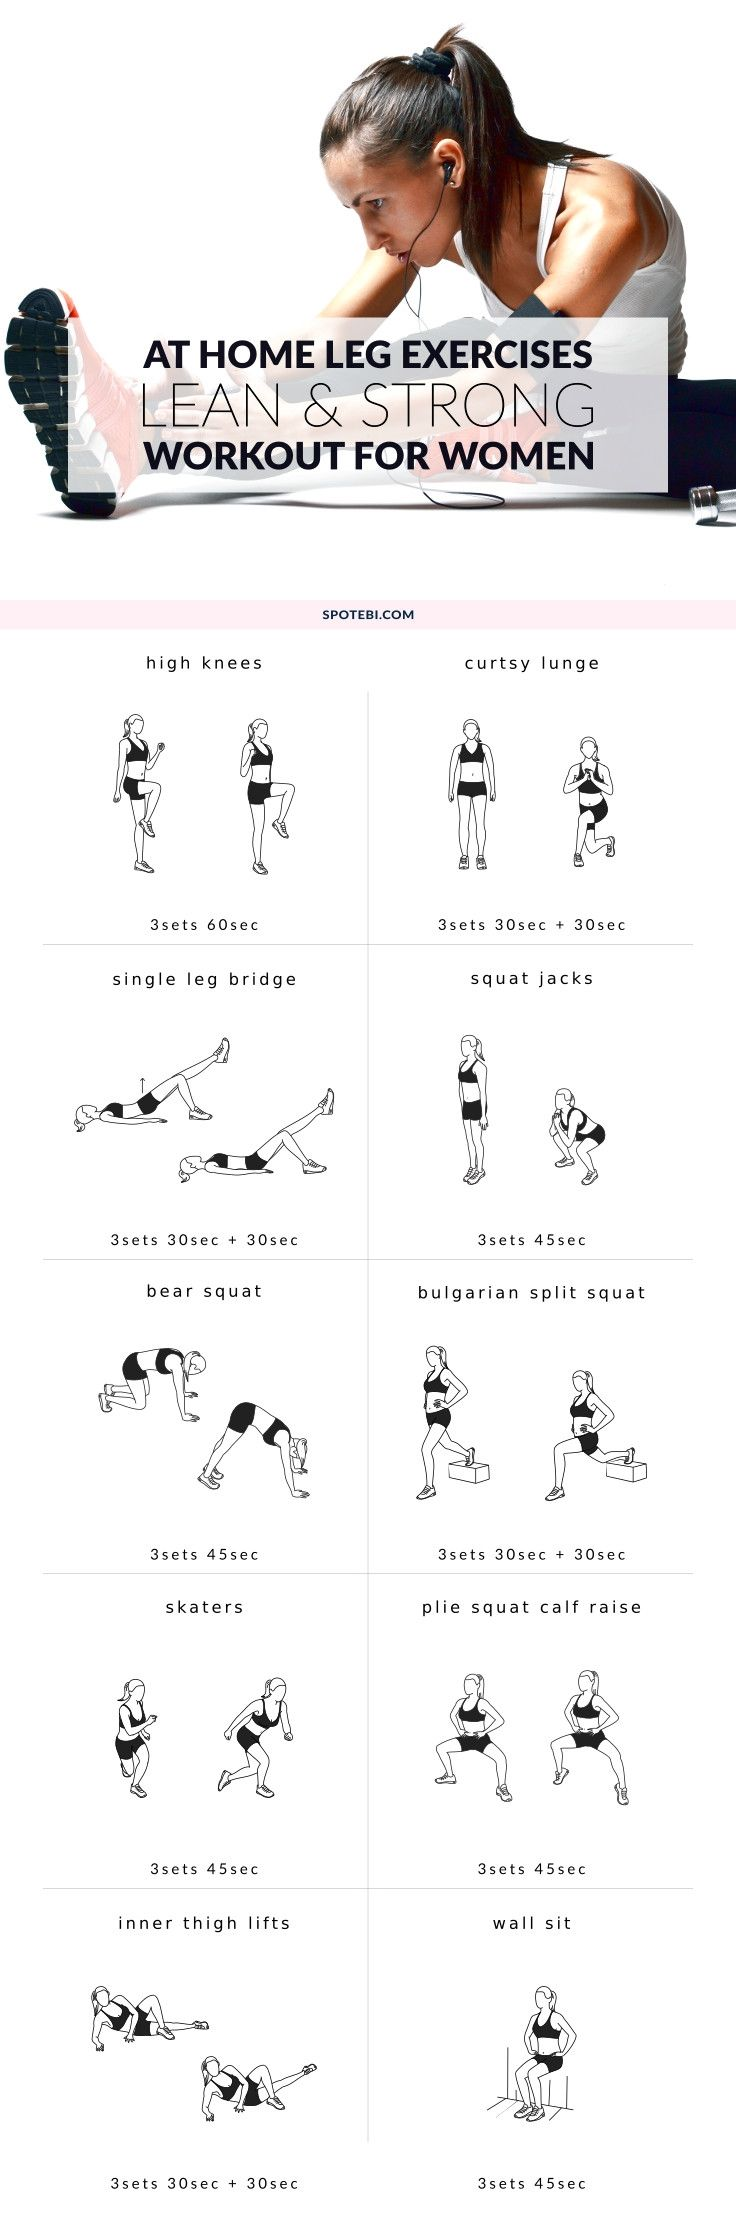 Upgrade your workout routine with these 10 leg exercises for women. Work your thighs, hips, quads, hamstrings and calves at home to build shapely legs and get the lean and strong lower body you've always wanted! http://www.spotebi.com/workout-routines/at-home-leg-exercises-women/ #weightlossrecipes